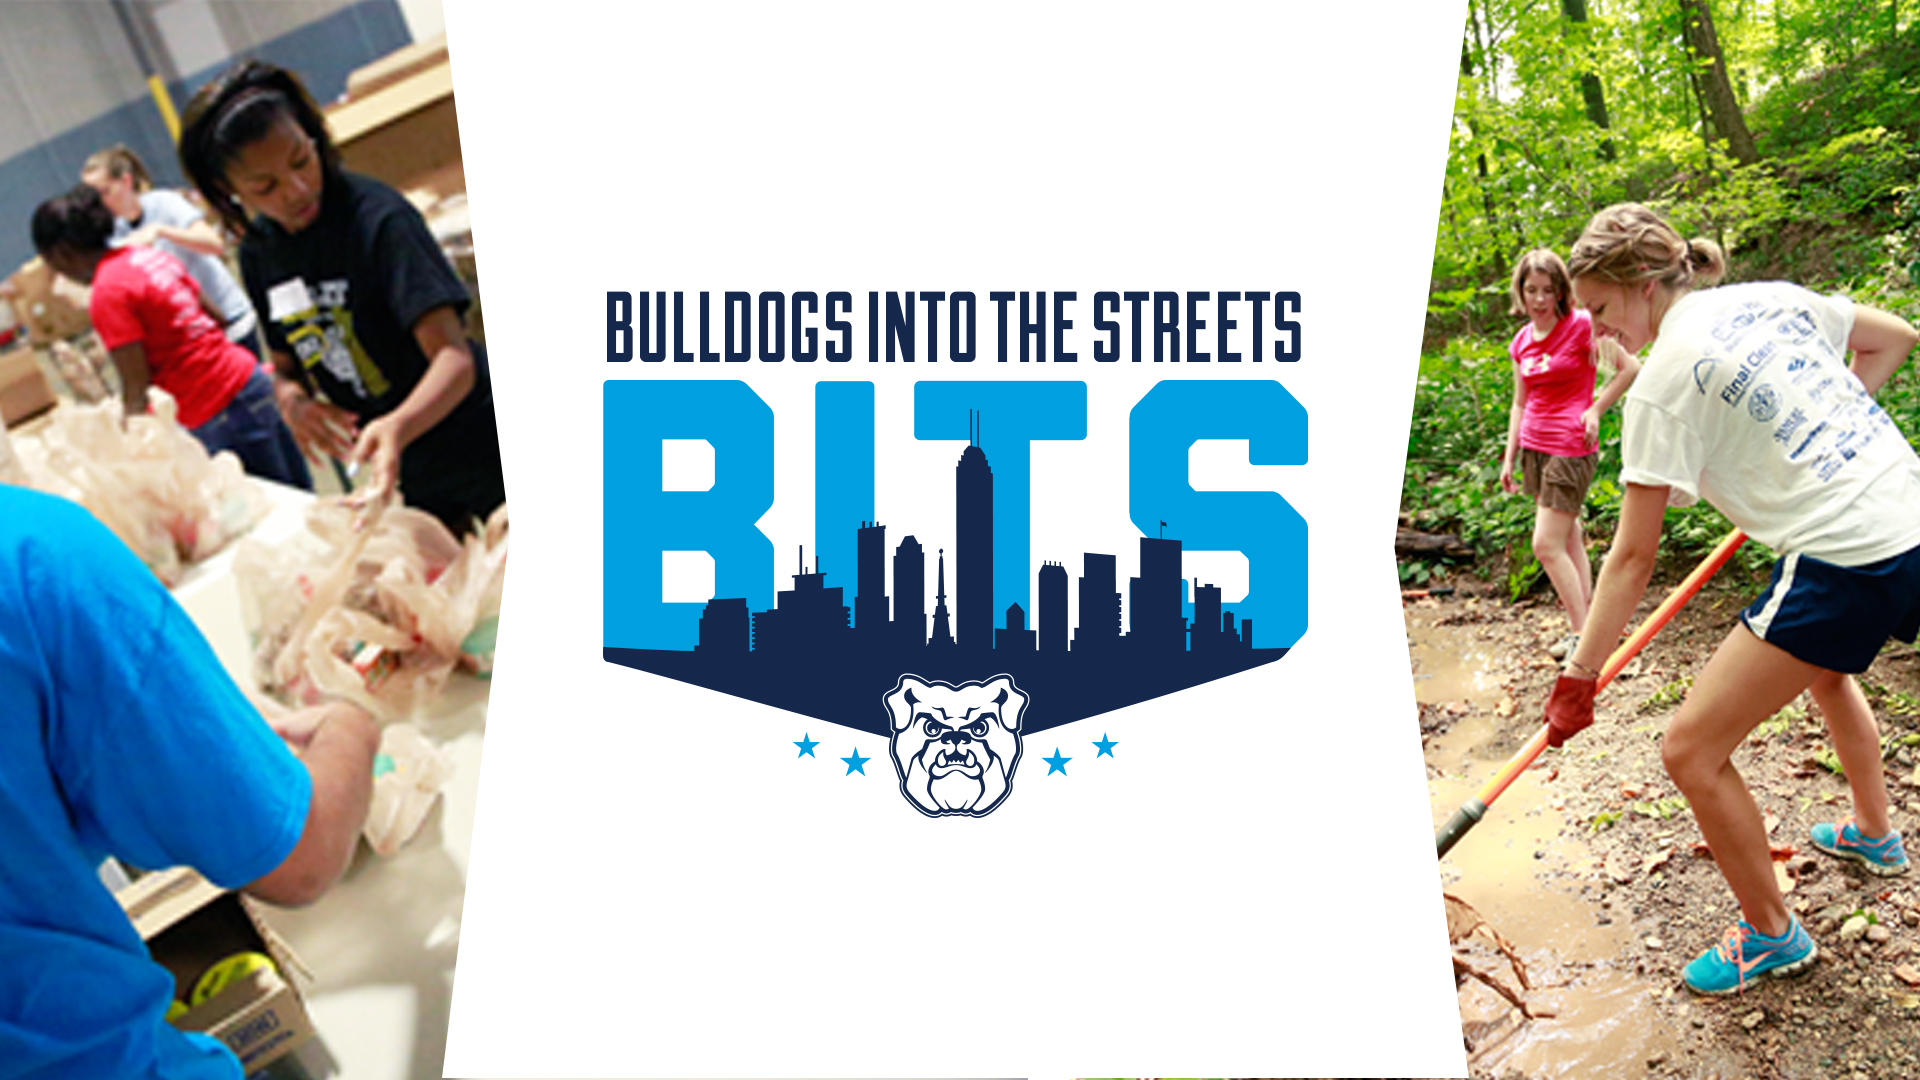 Cincinnati Bulldogs Into The Streets (BITS)